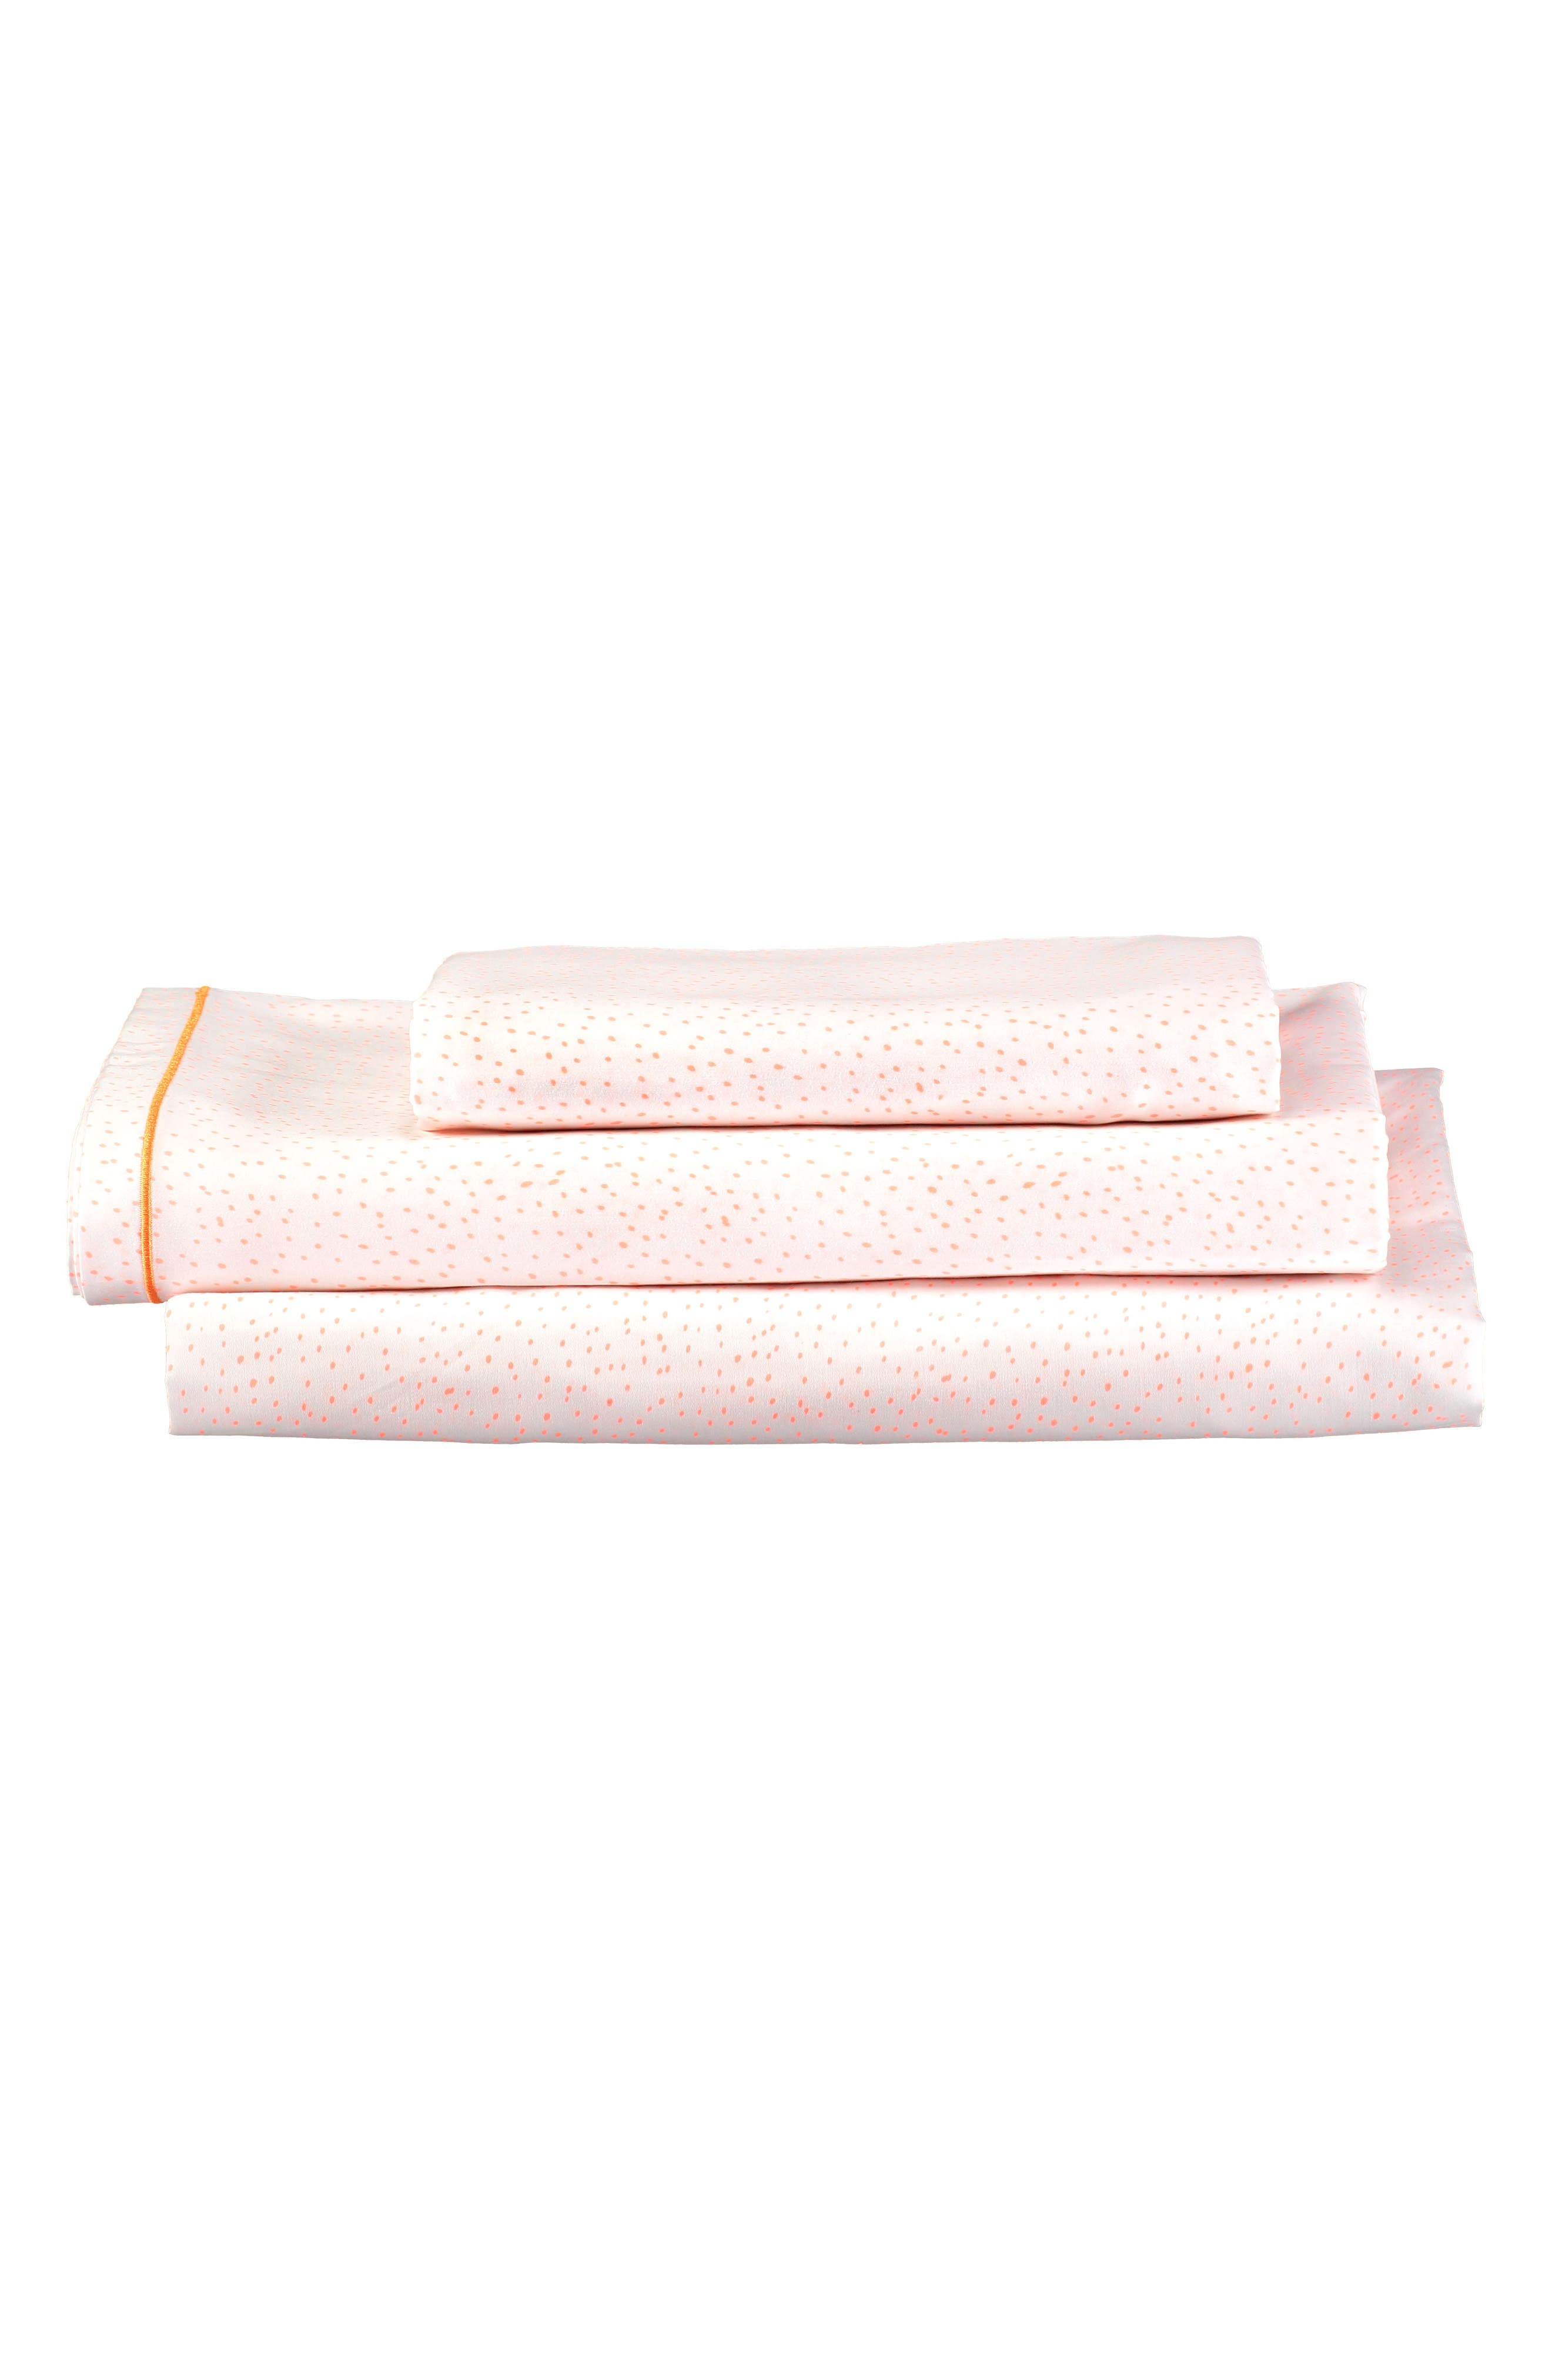 Twin Sheet & Pillowcase Set,                         Main,                         color, Coral